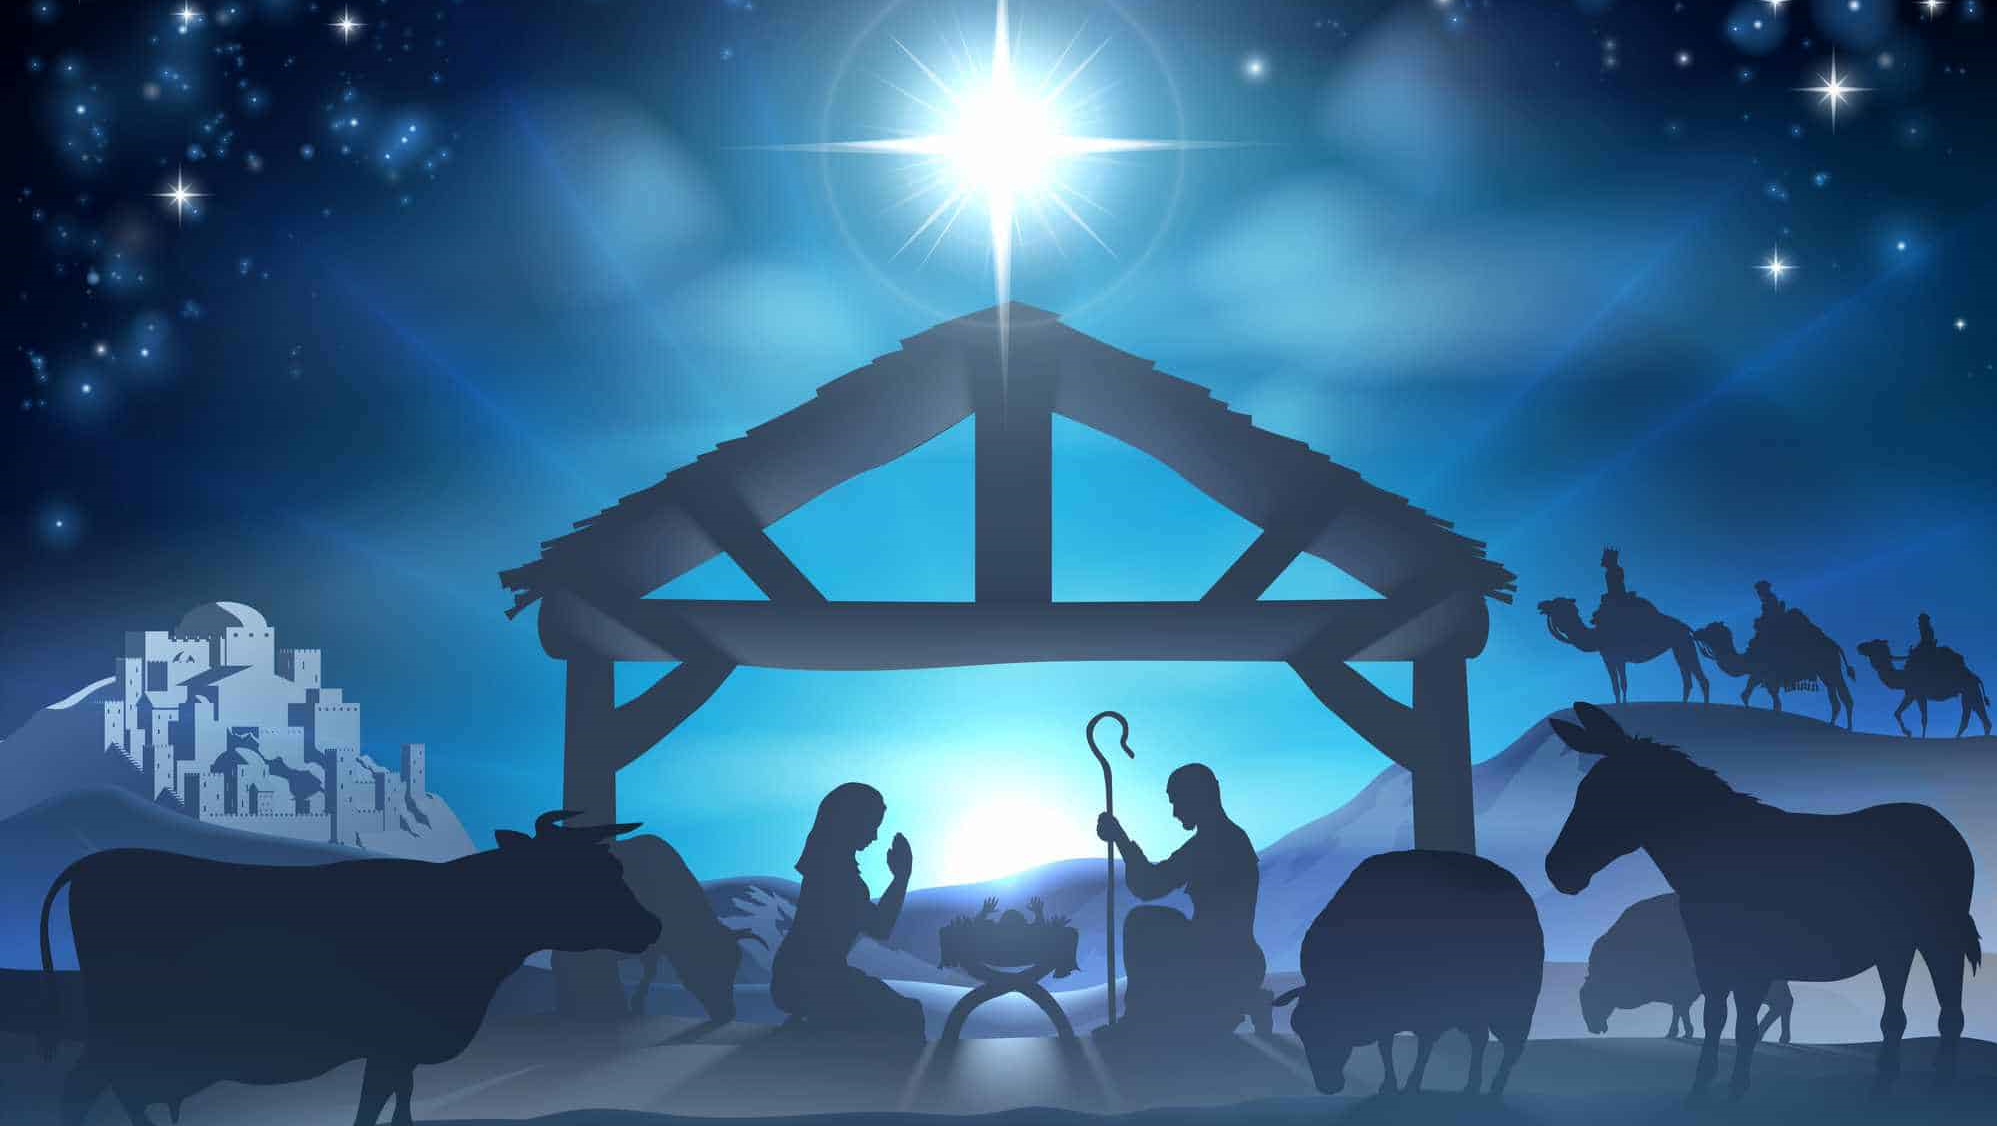 christmas-religious-images-5 image